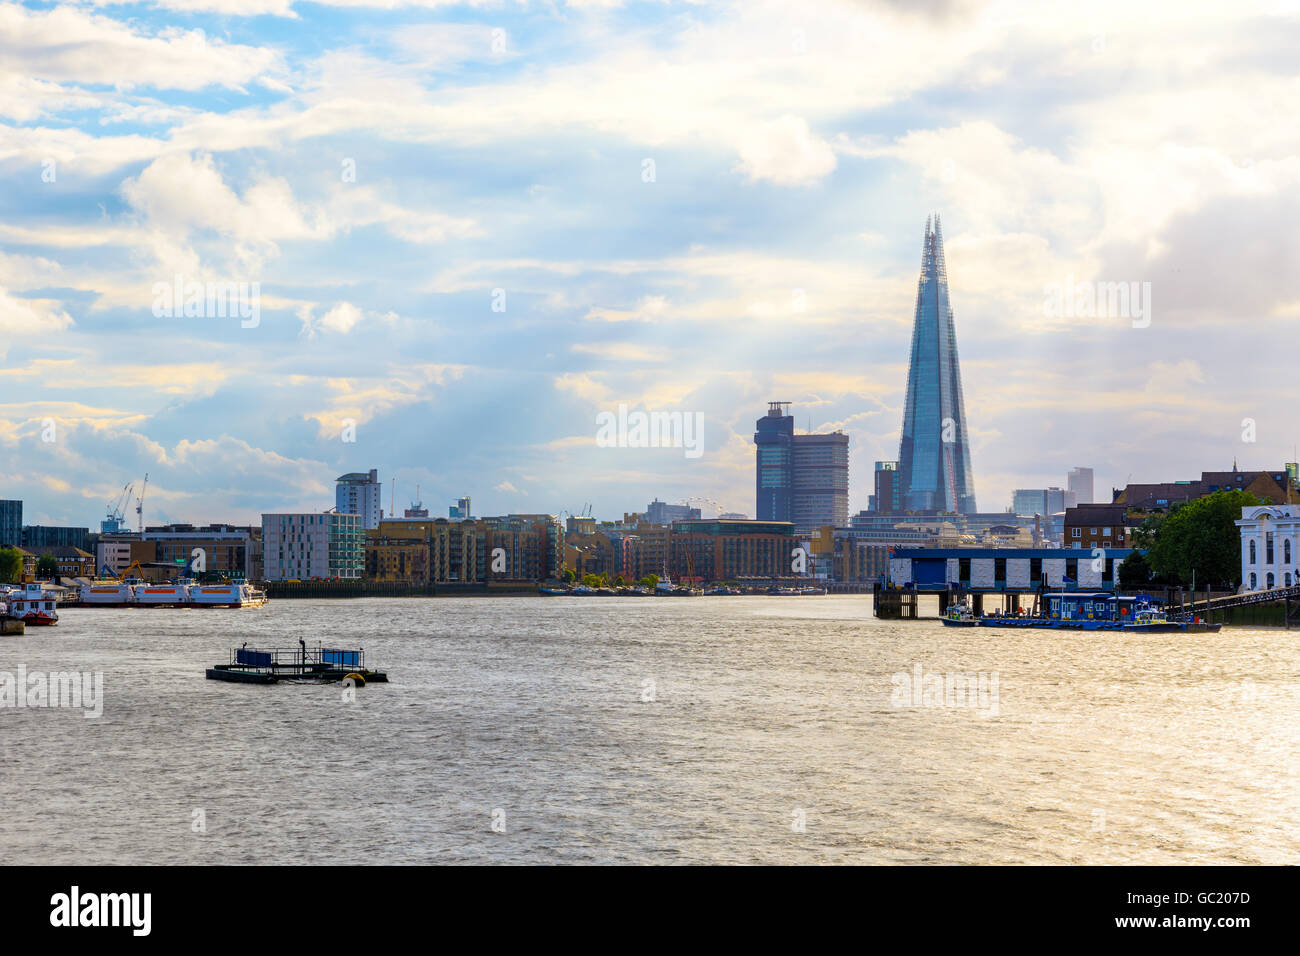 London cityscape with rays of sunlight shining through clouds Stock Photo